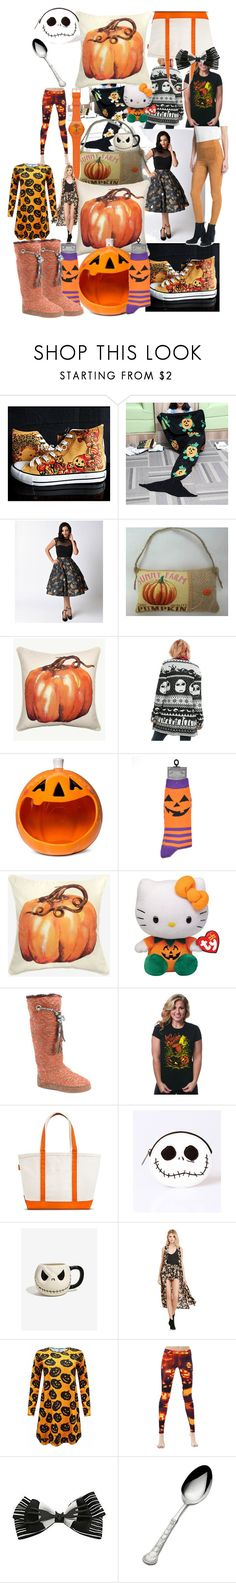 """""""One farm full"""" by lerp ❤ liked on Polyvore featuring HVBAO, Hell Bunny, Grandin Road, Disney, Hello Kitty, Muk Luks, CB Station, BB Dakota, WithChic and Wallace"""